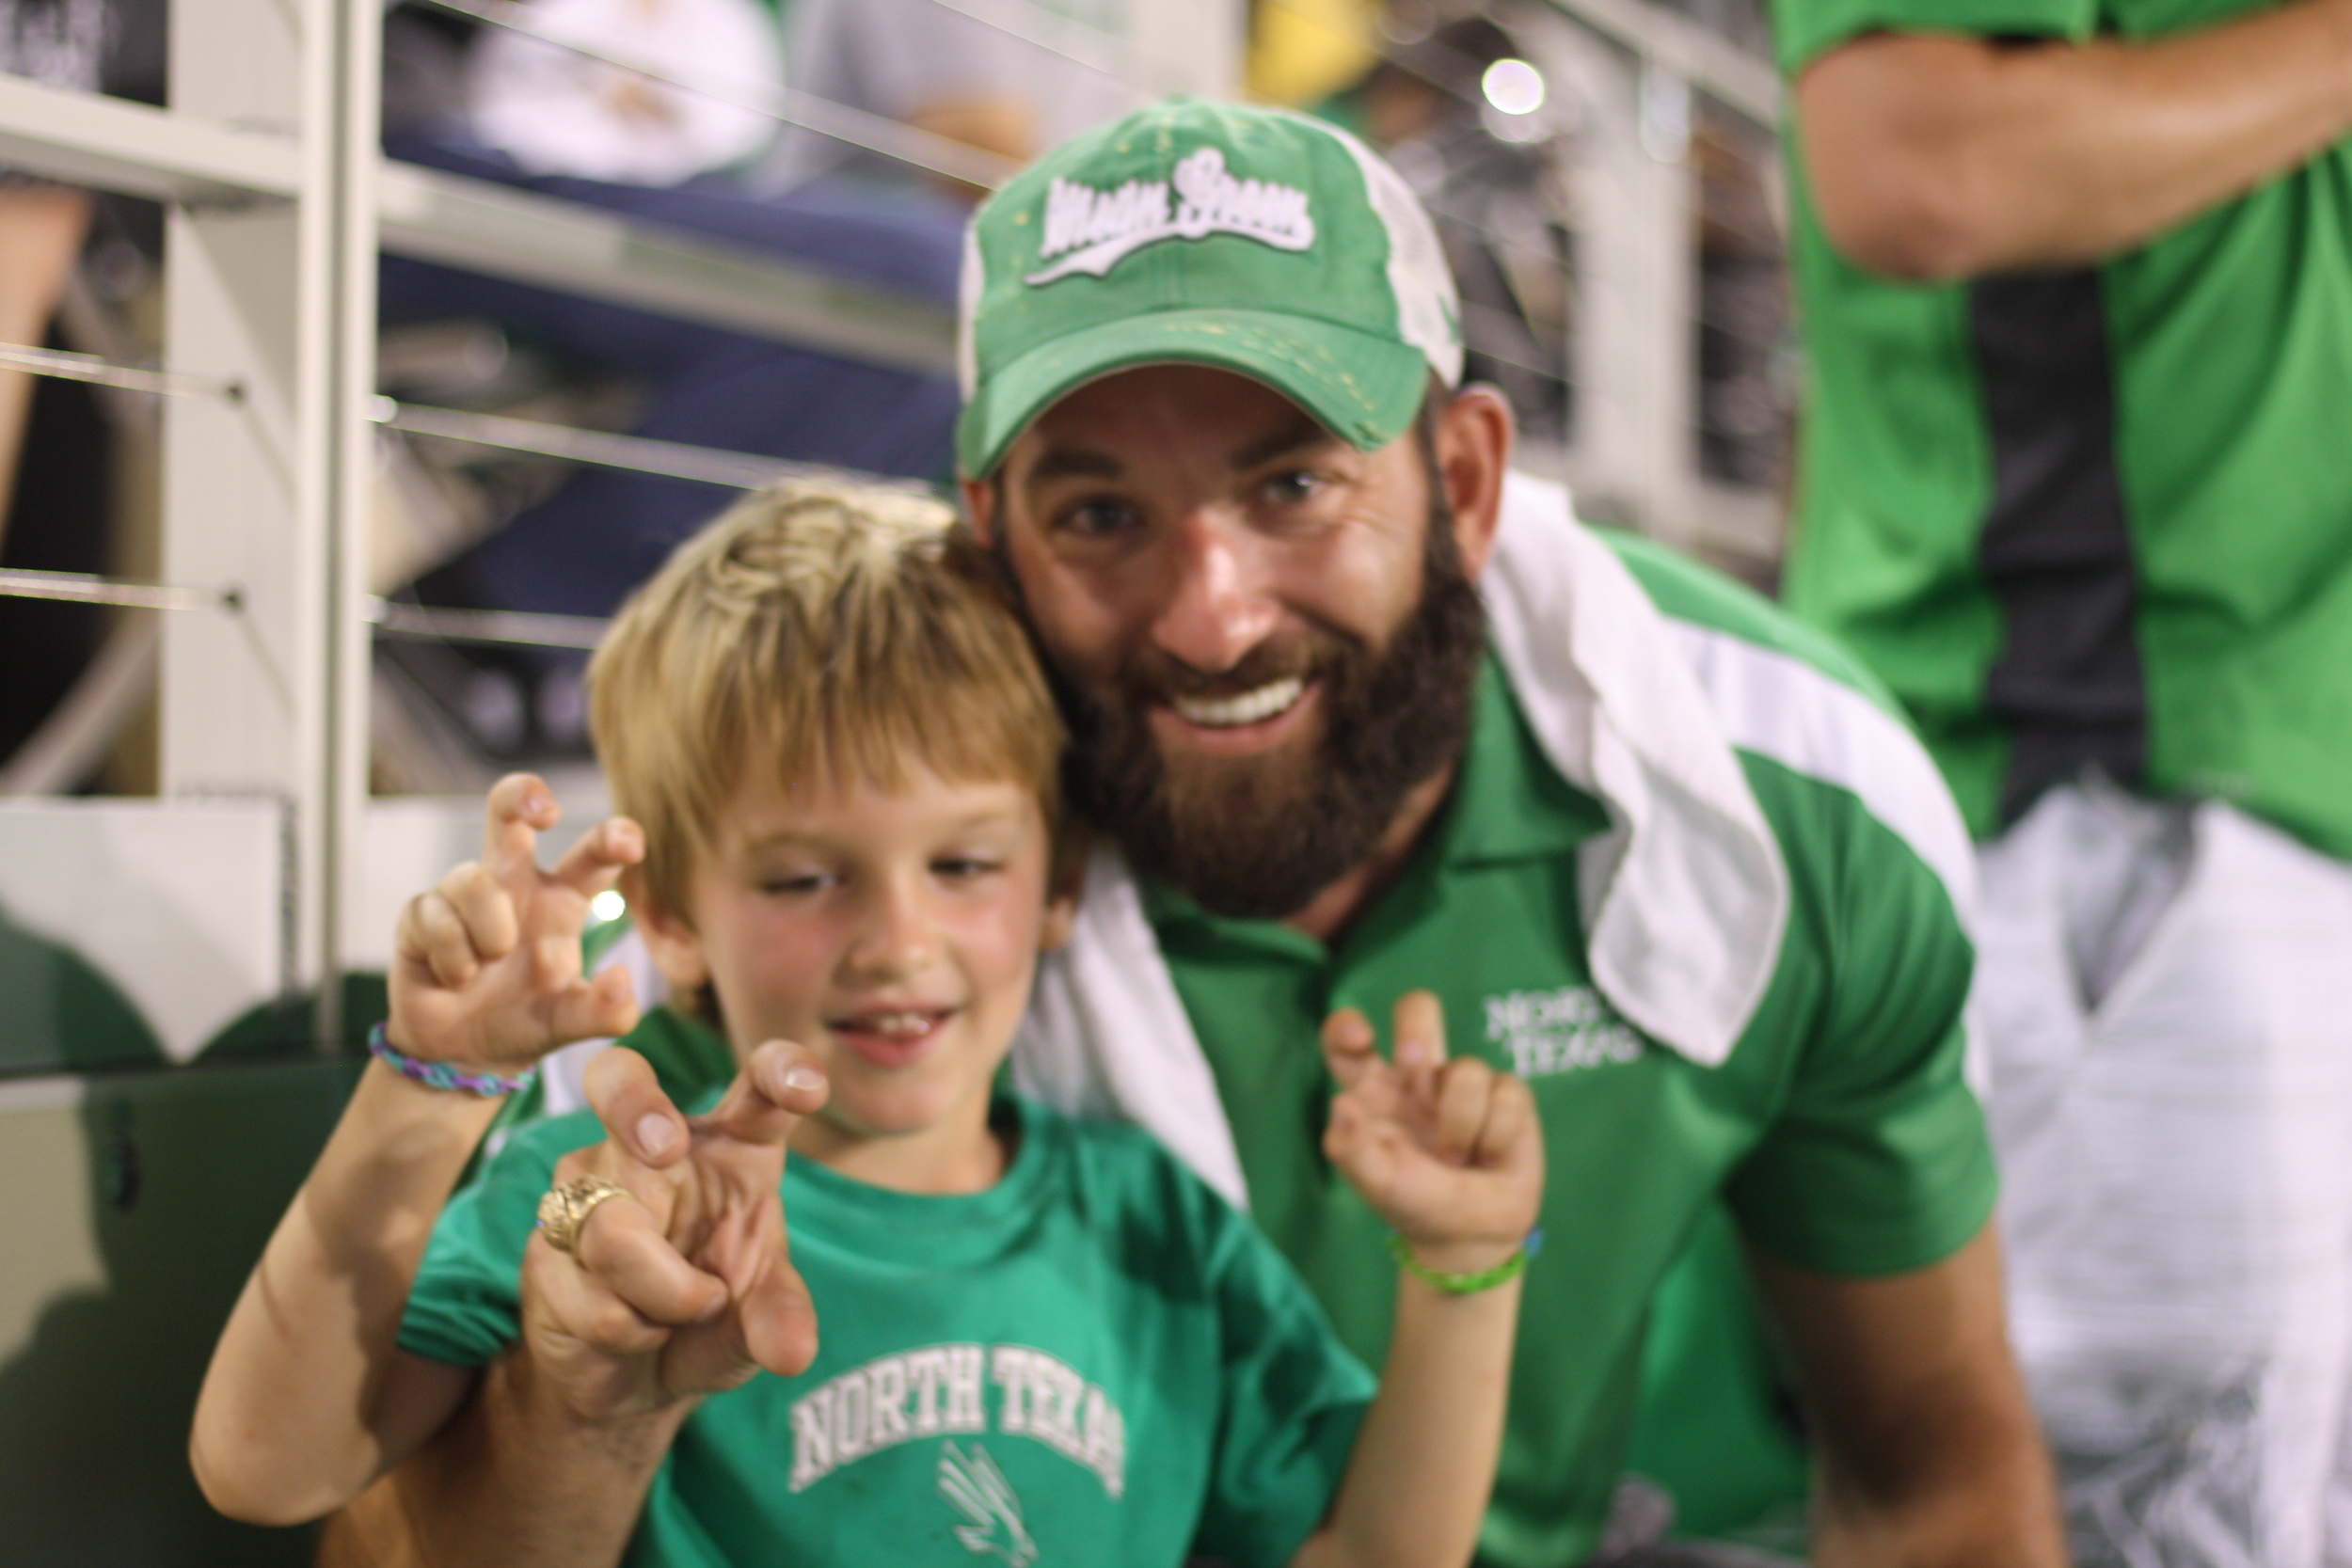 We loved seeing all of the UNT spirit being taught to future generations.